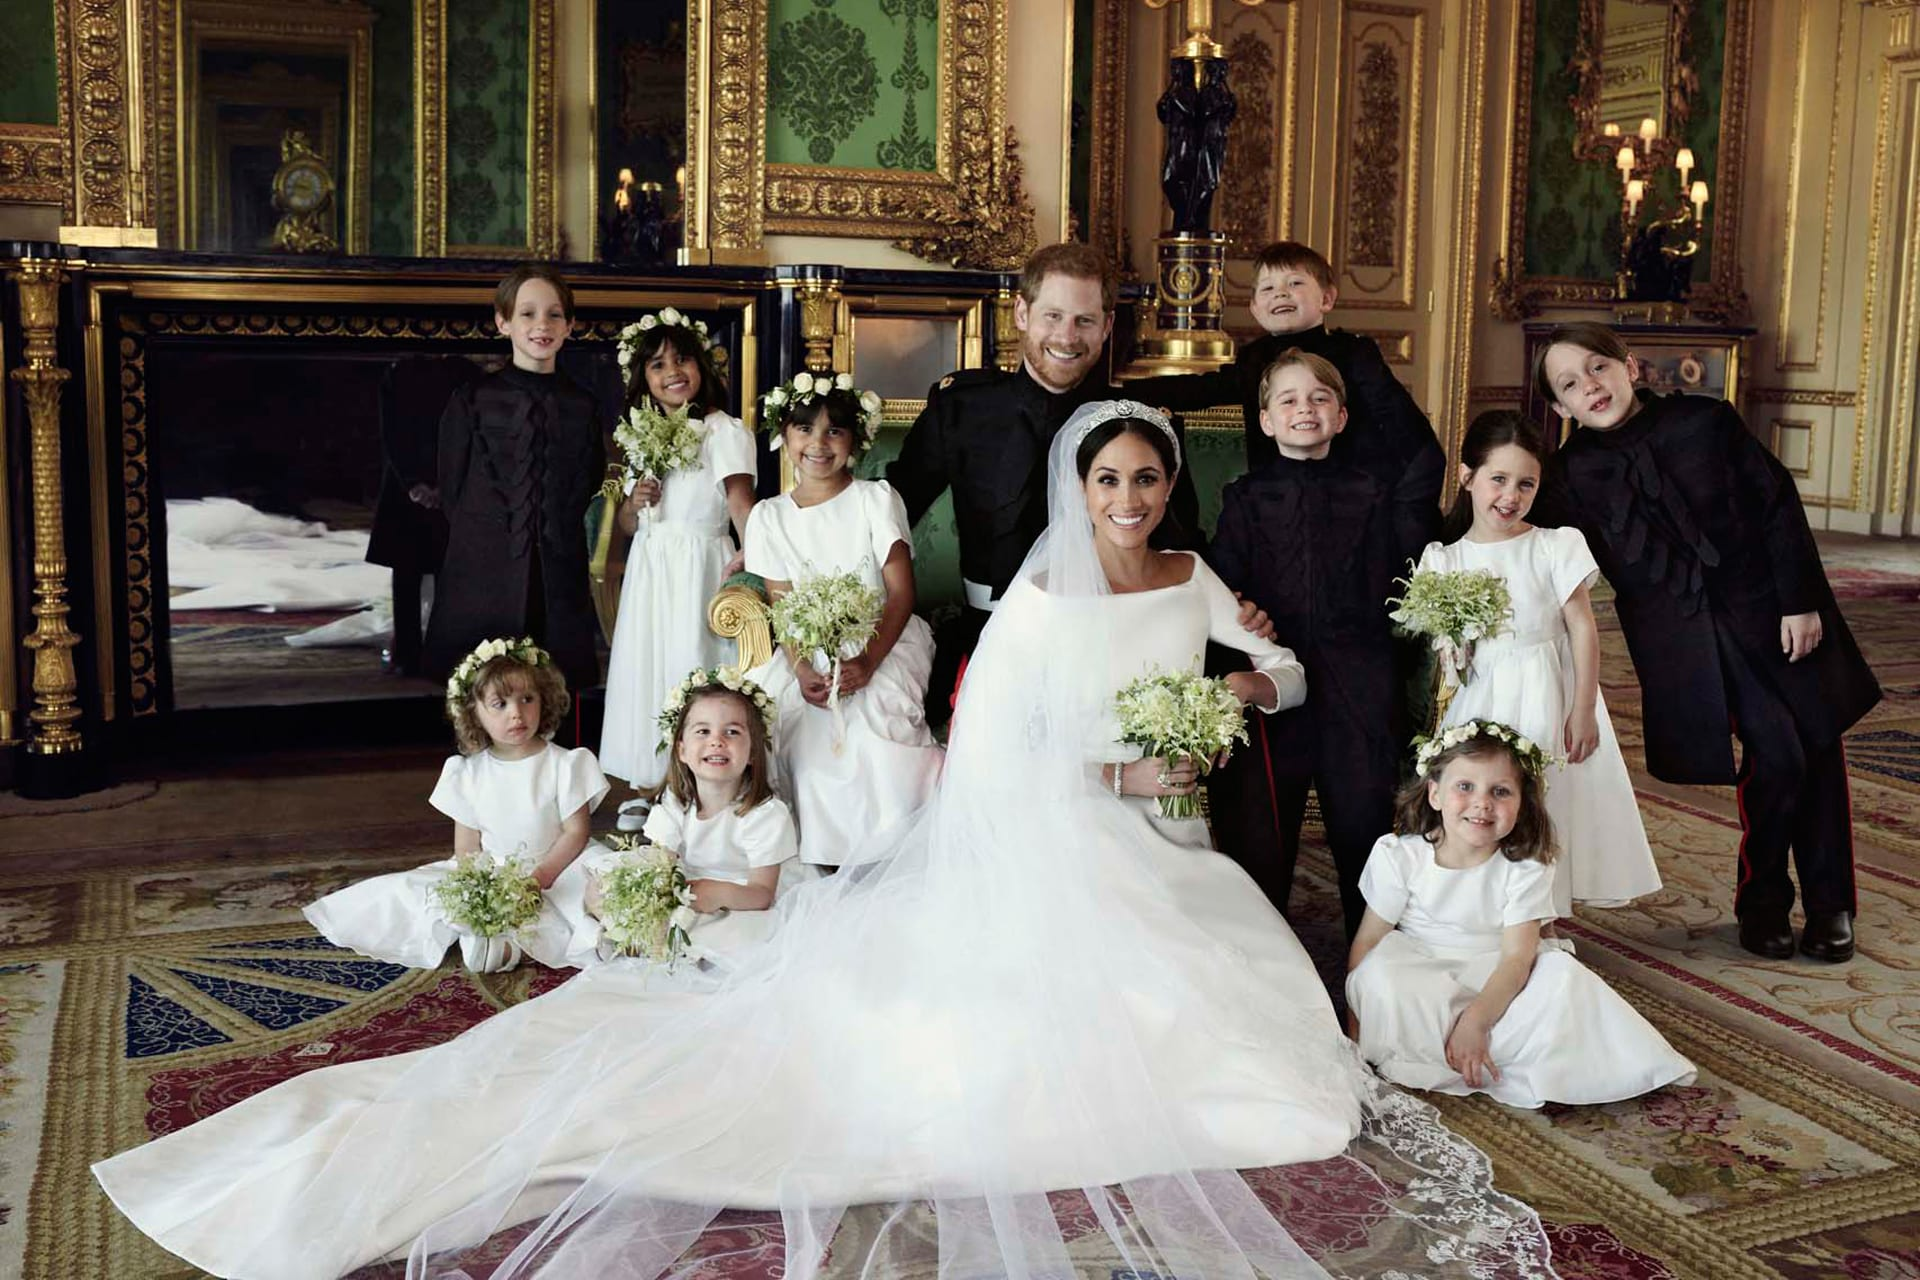 Prince Harry and Meghan Markle's wedding photographer speaks out about photographing their big day